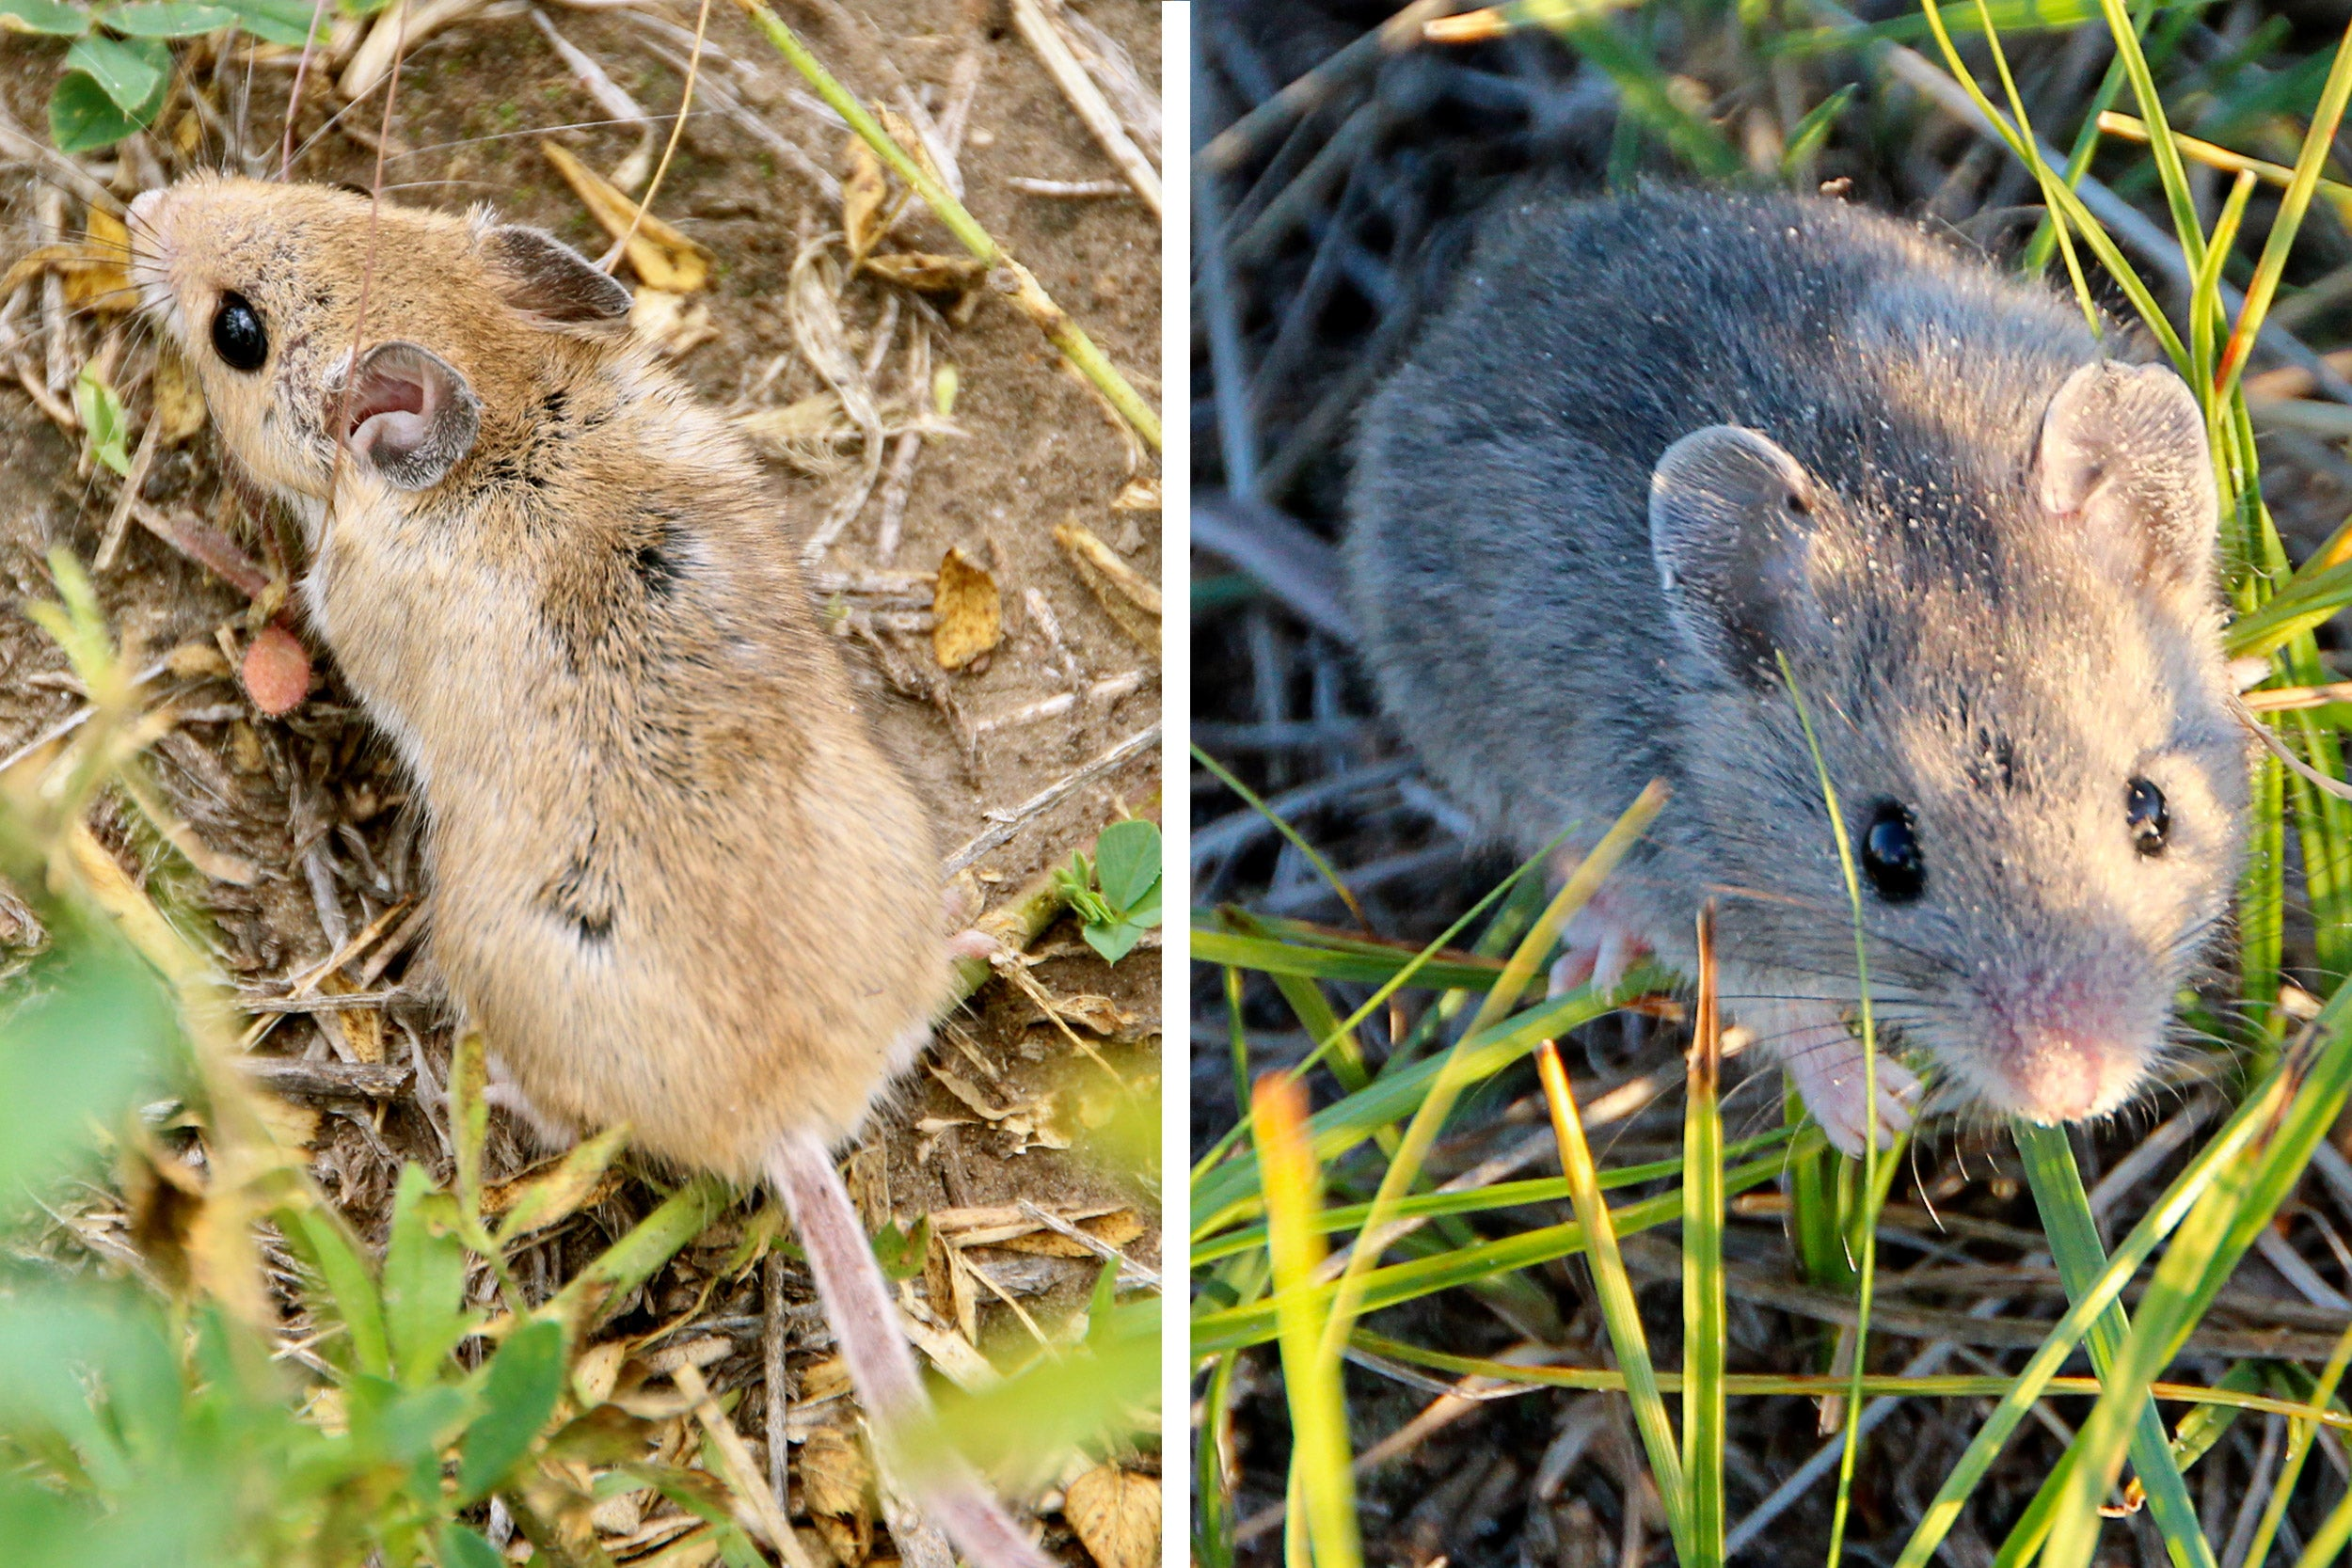 A new study led by Harvard Professor Hopi Hoekstra not only showed differences between how light- and dark-colored mice survived in light- and dark-colored habitats, but also chalked up part of those differences to a mutation that affects pigment, and explored exactly how the mutation produced a novel coat color.